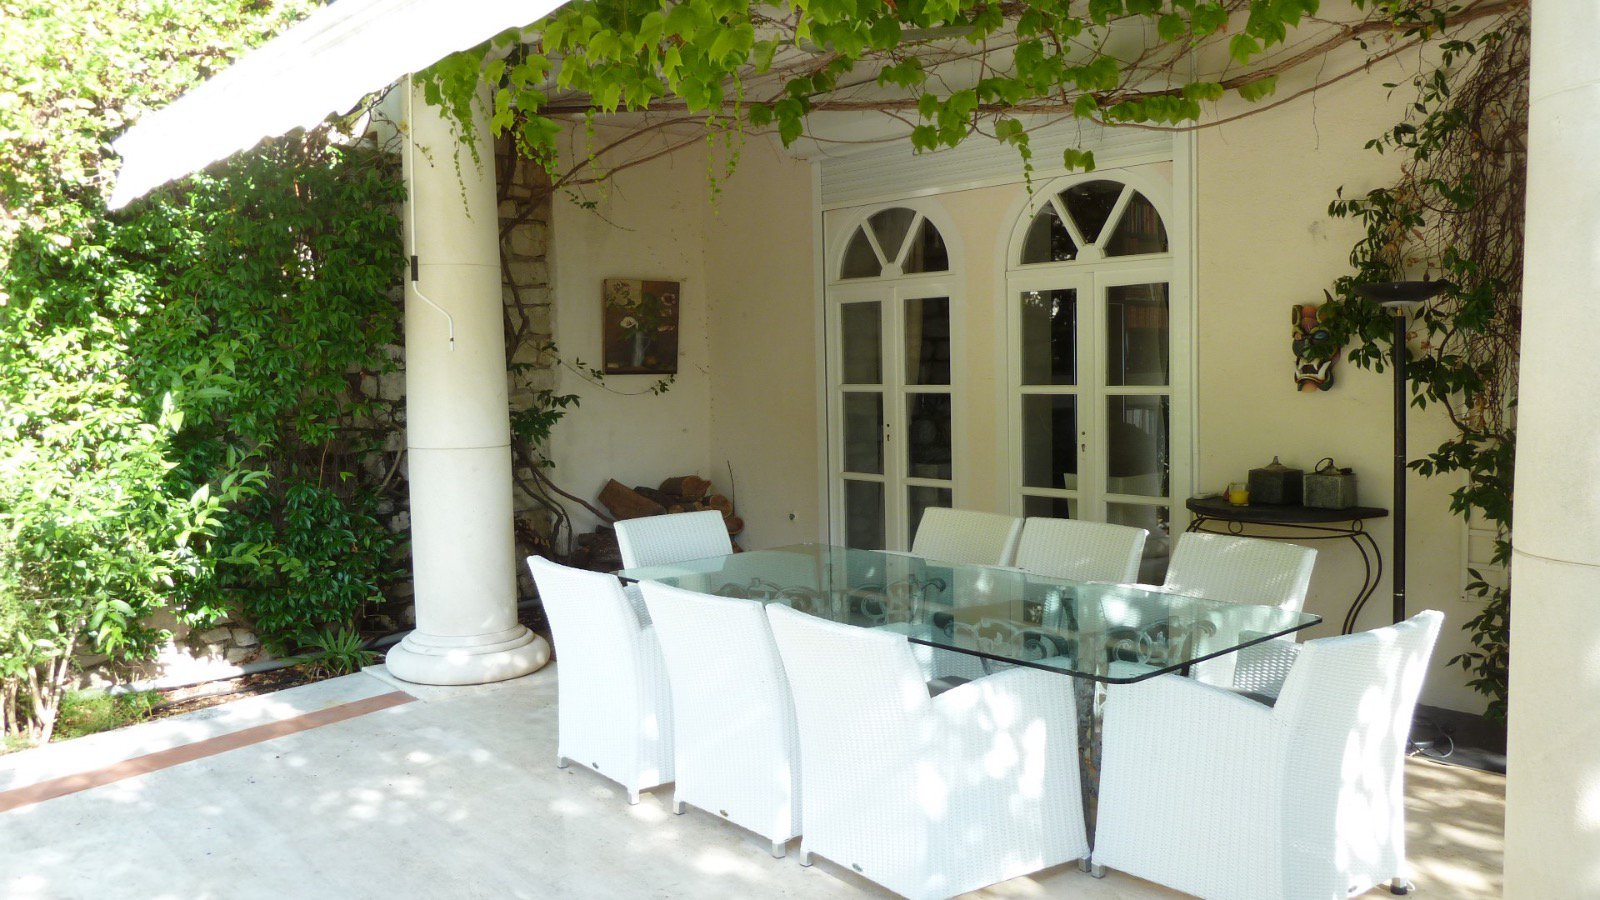 Villa Panoramic sea, quiet, colonial style, 7 rooms, large lot, pool, residential area